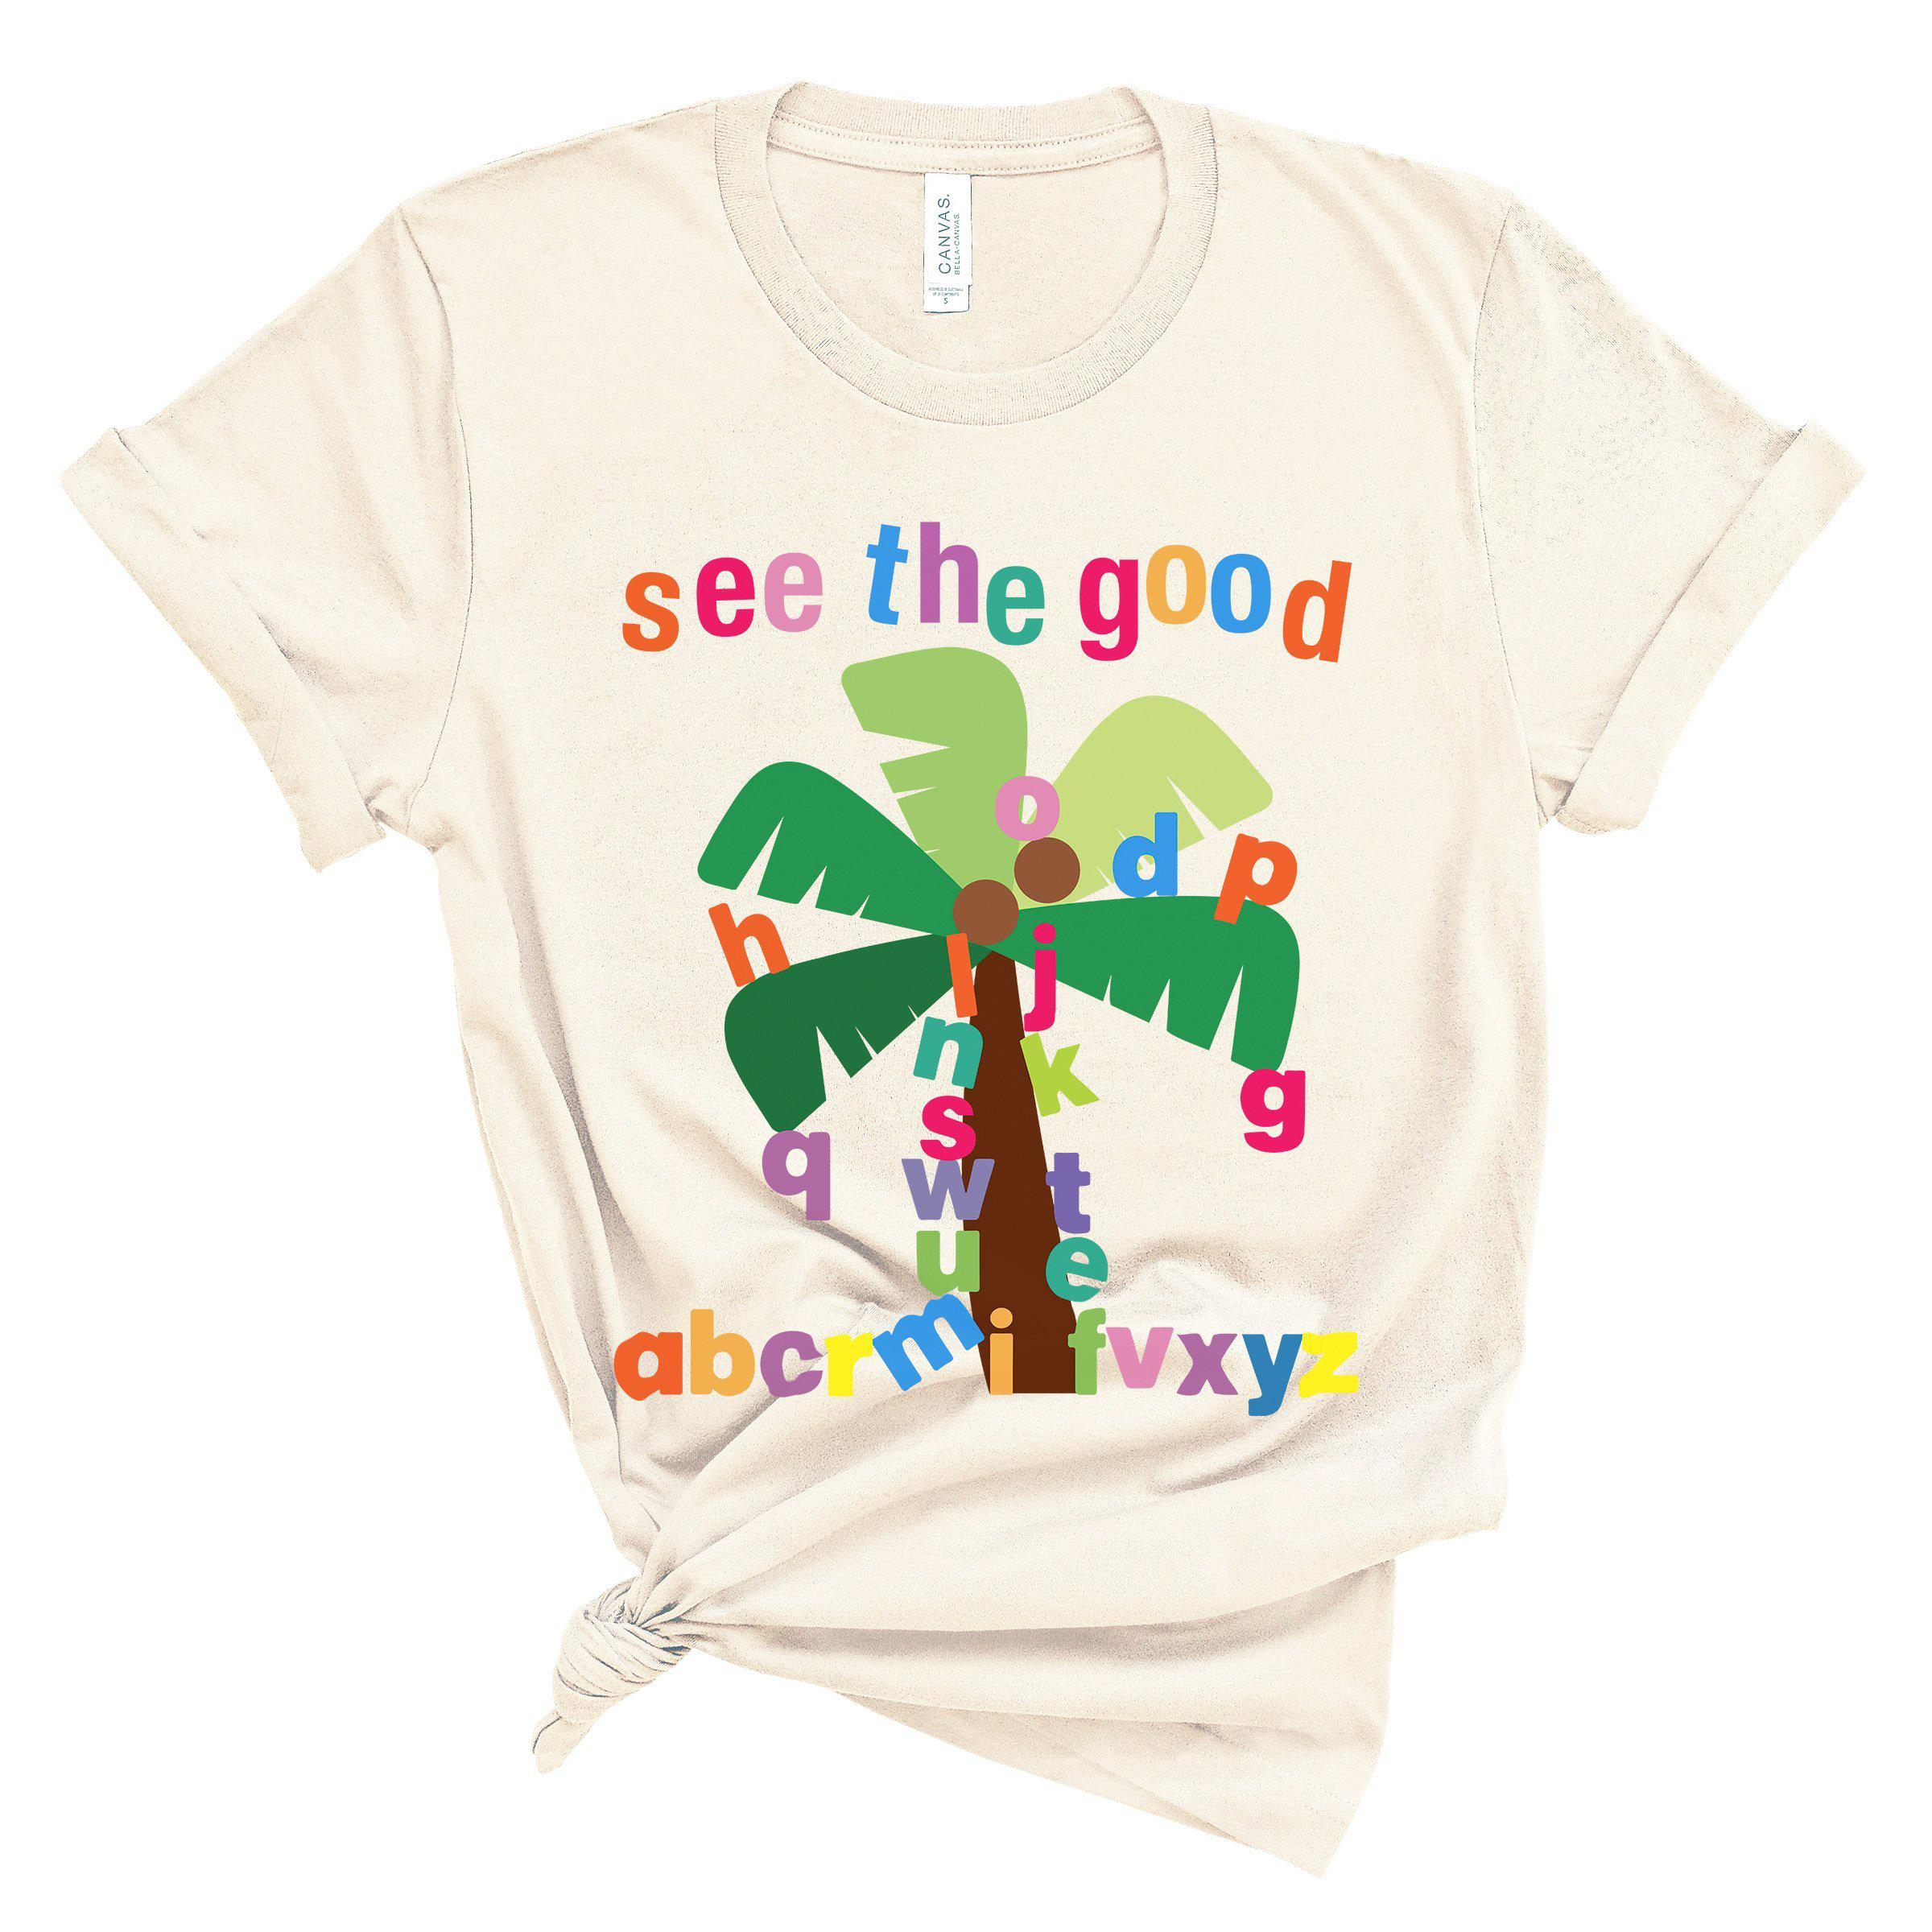 (Soft Unisex BC 3001) See The Good Palm Tree Letters Boom Boom